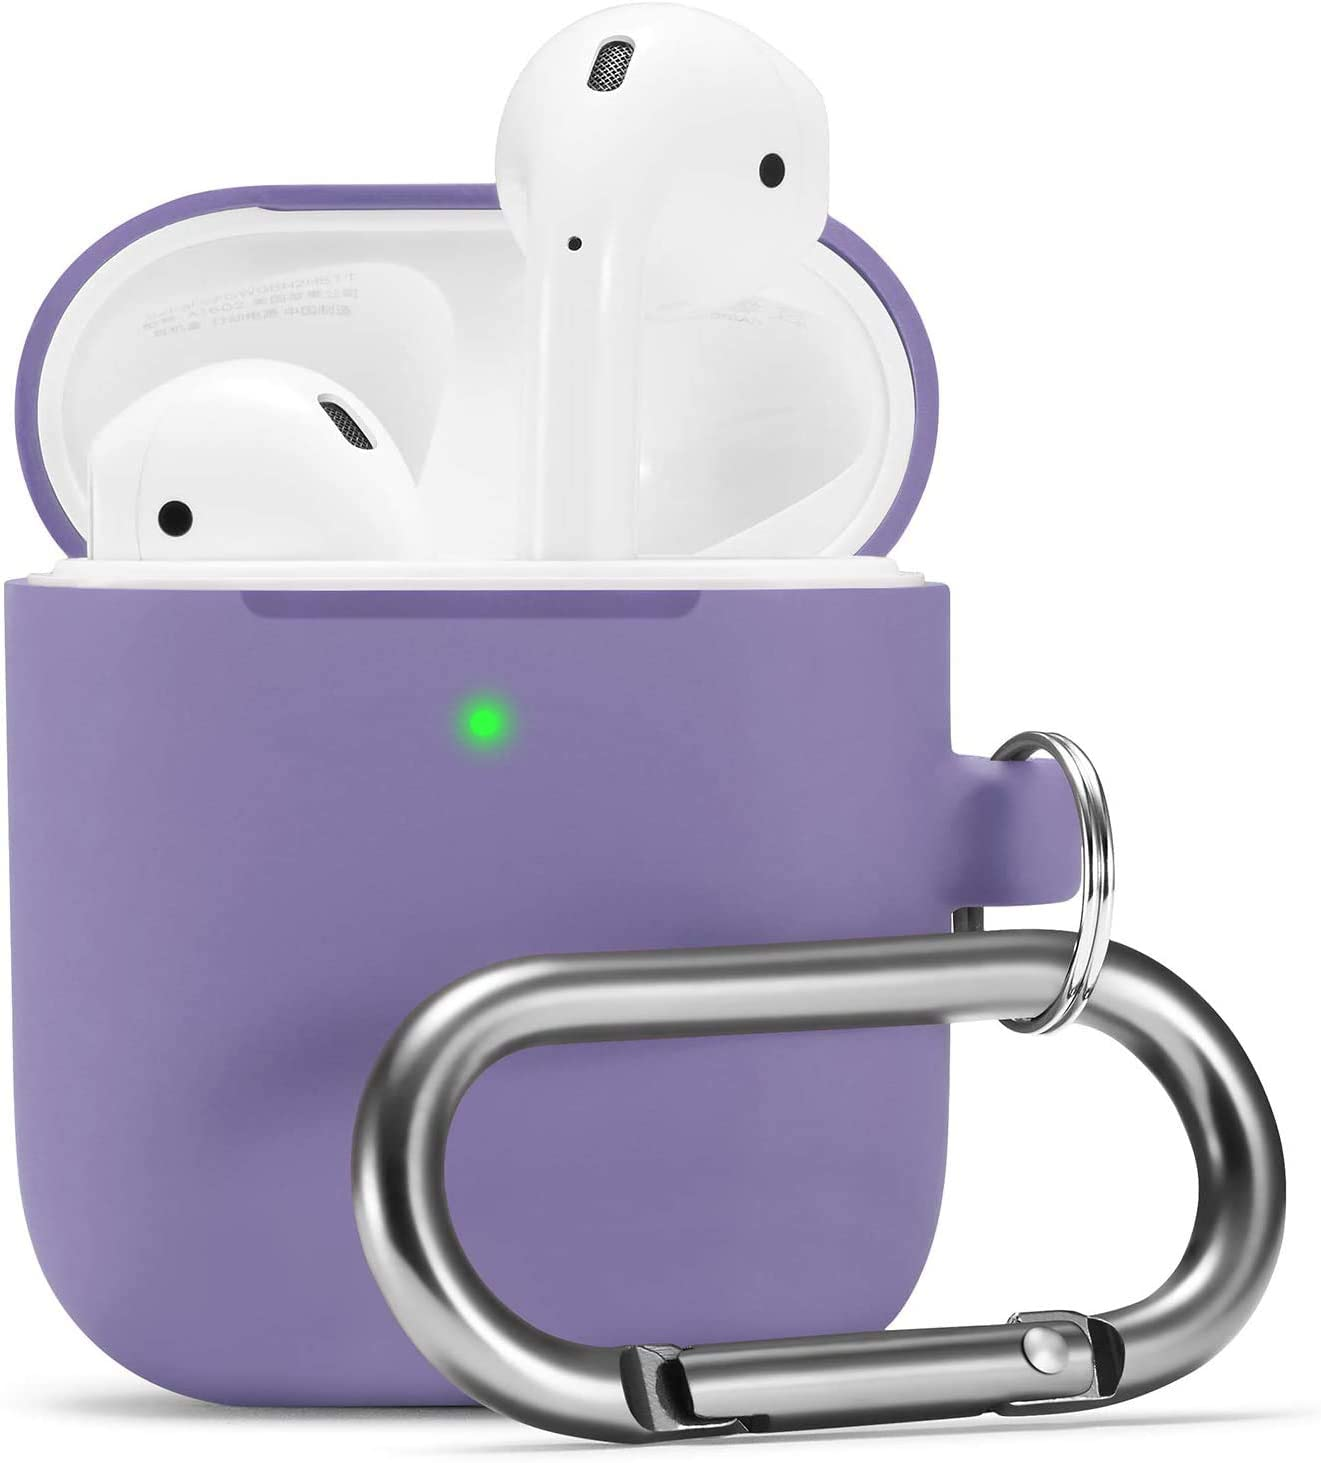 Camyse Airpods Case, Airpod Silicone Skin Cases Cover, Full Protective Durable Shockproof with Keychain Compatible with Apple Airpods 2 & 1 Charging Case,AirpodsAccesssories (Pastel Purple)